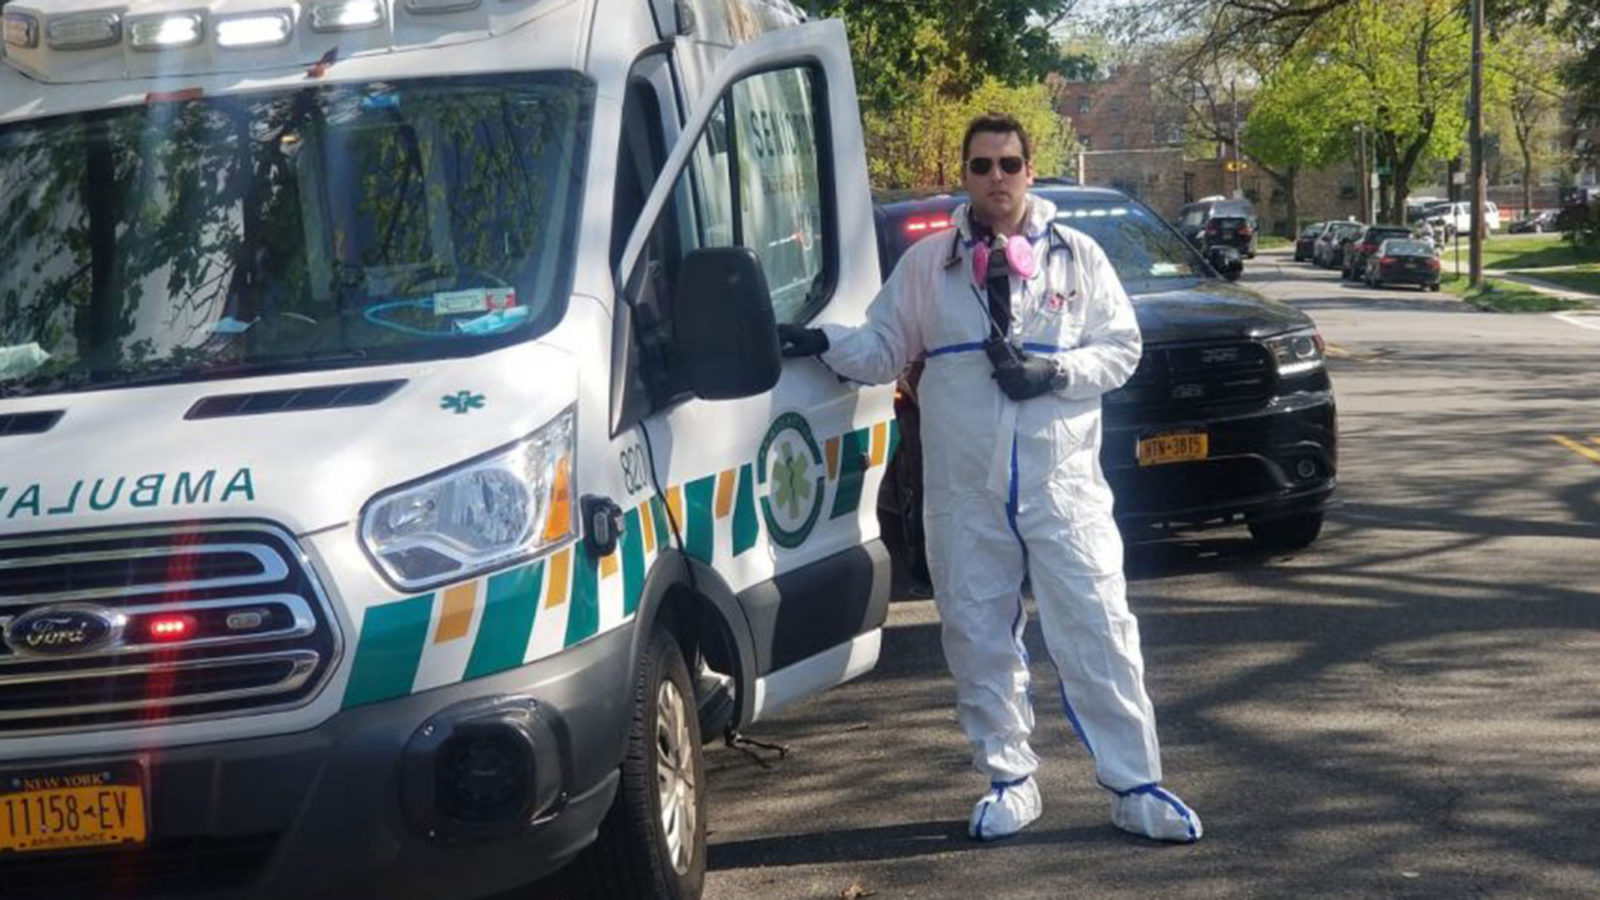 Mark Vatch stands near an emergency medical vehicle dresses in a protective white suit and mask around his neck.